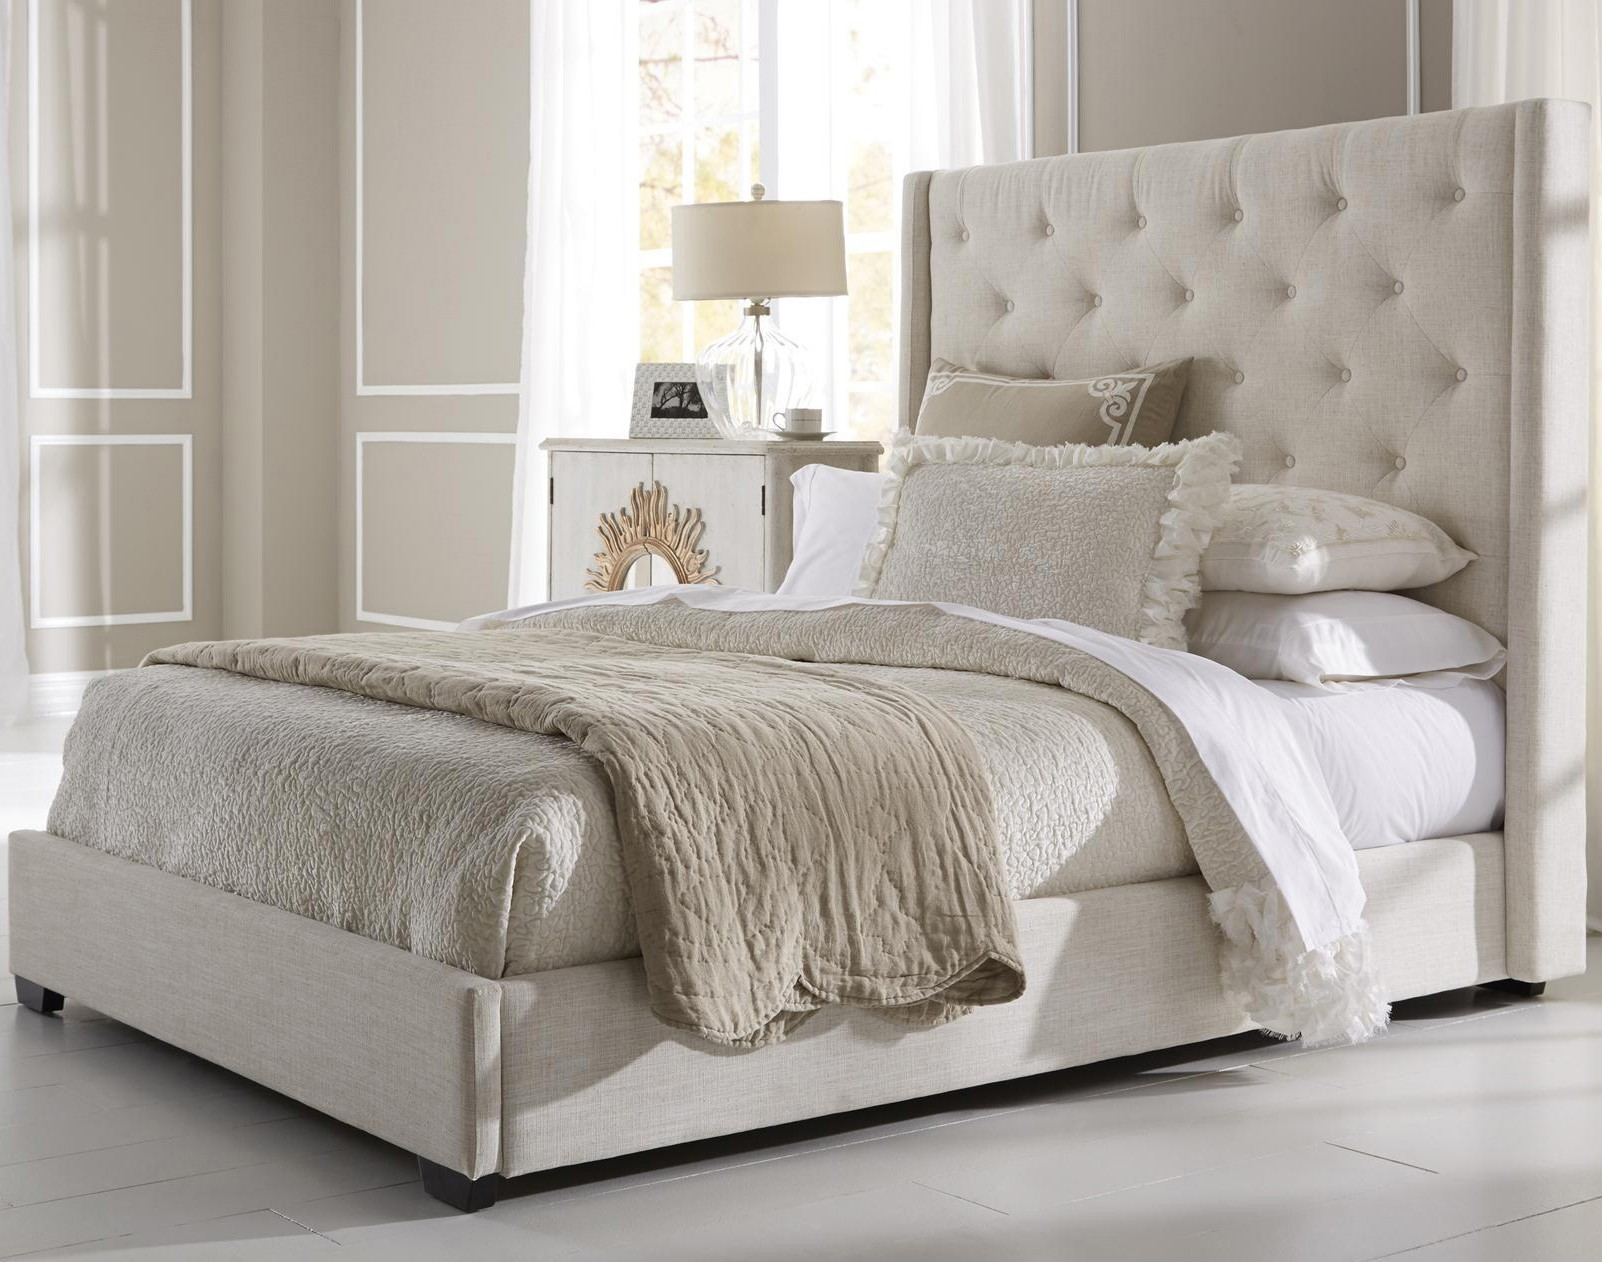 upholstered beds contemporary shelter fabric upholstered bed in cream DBKPZNW